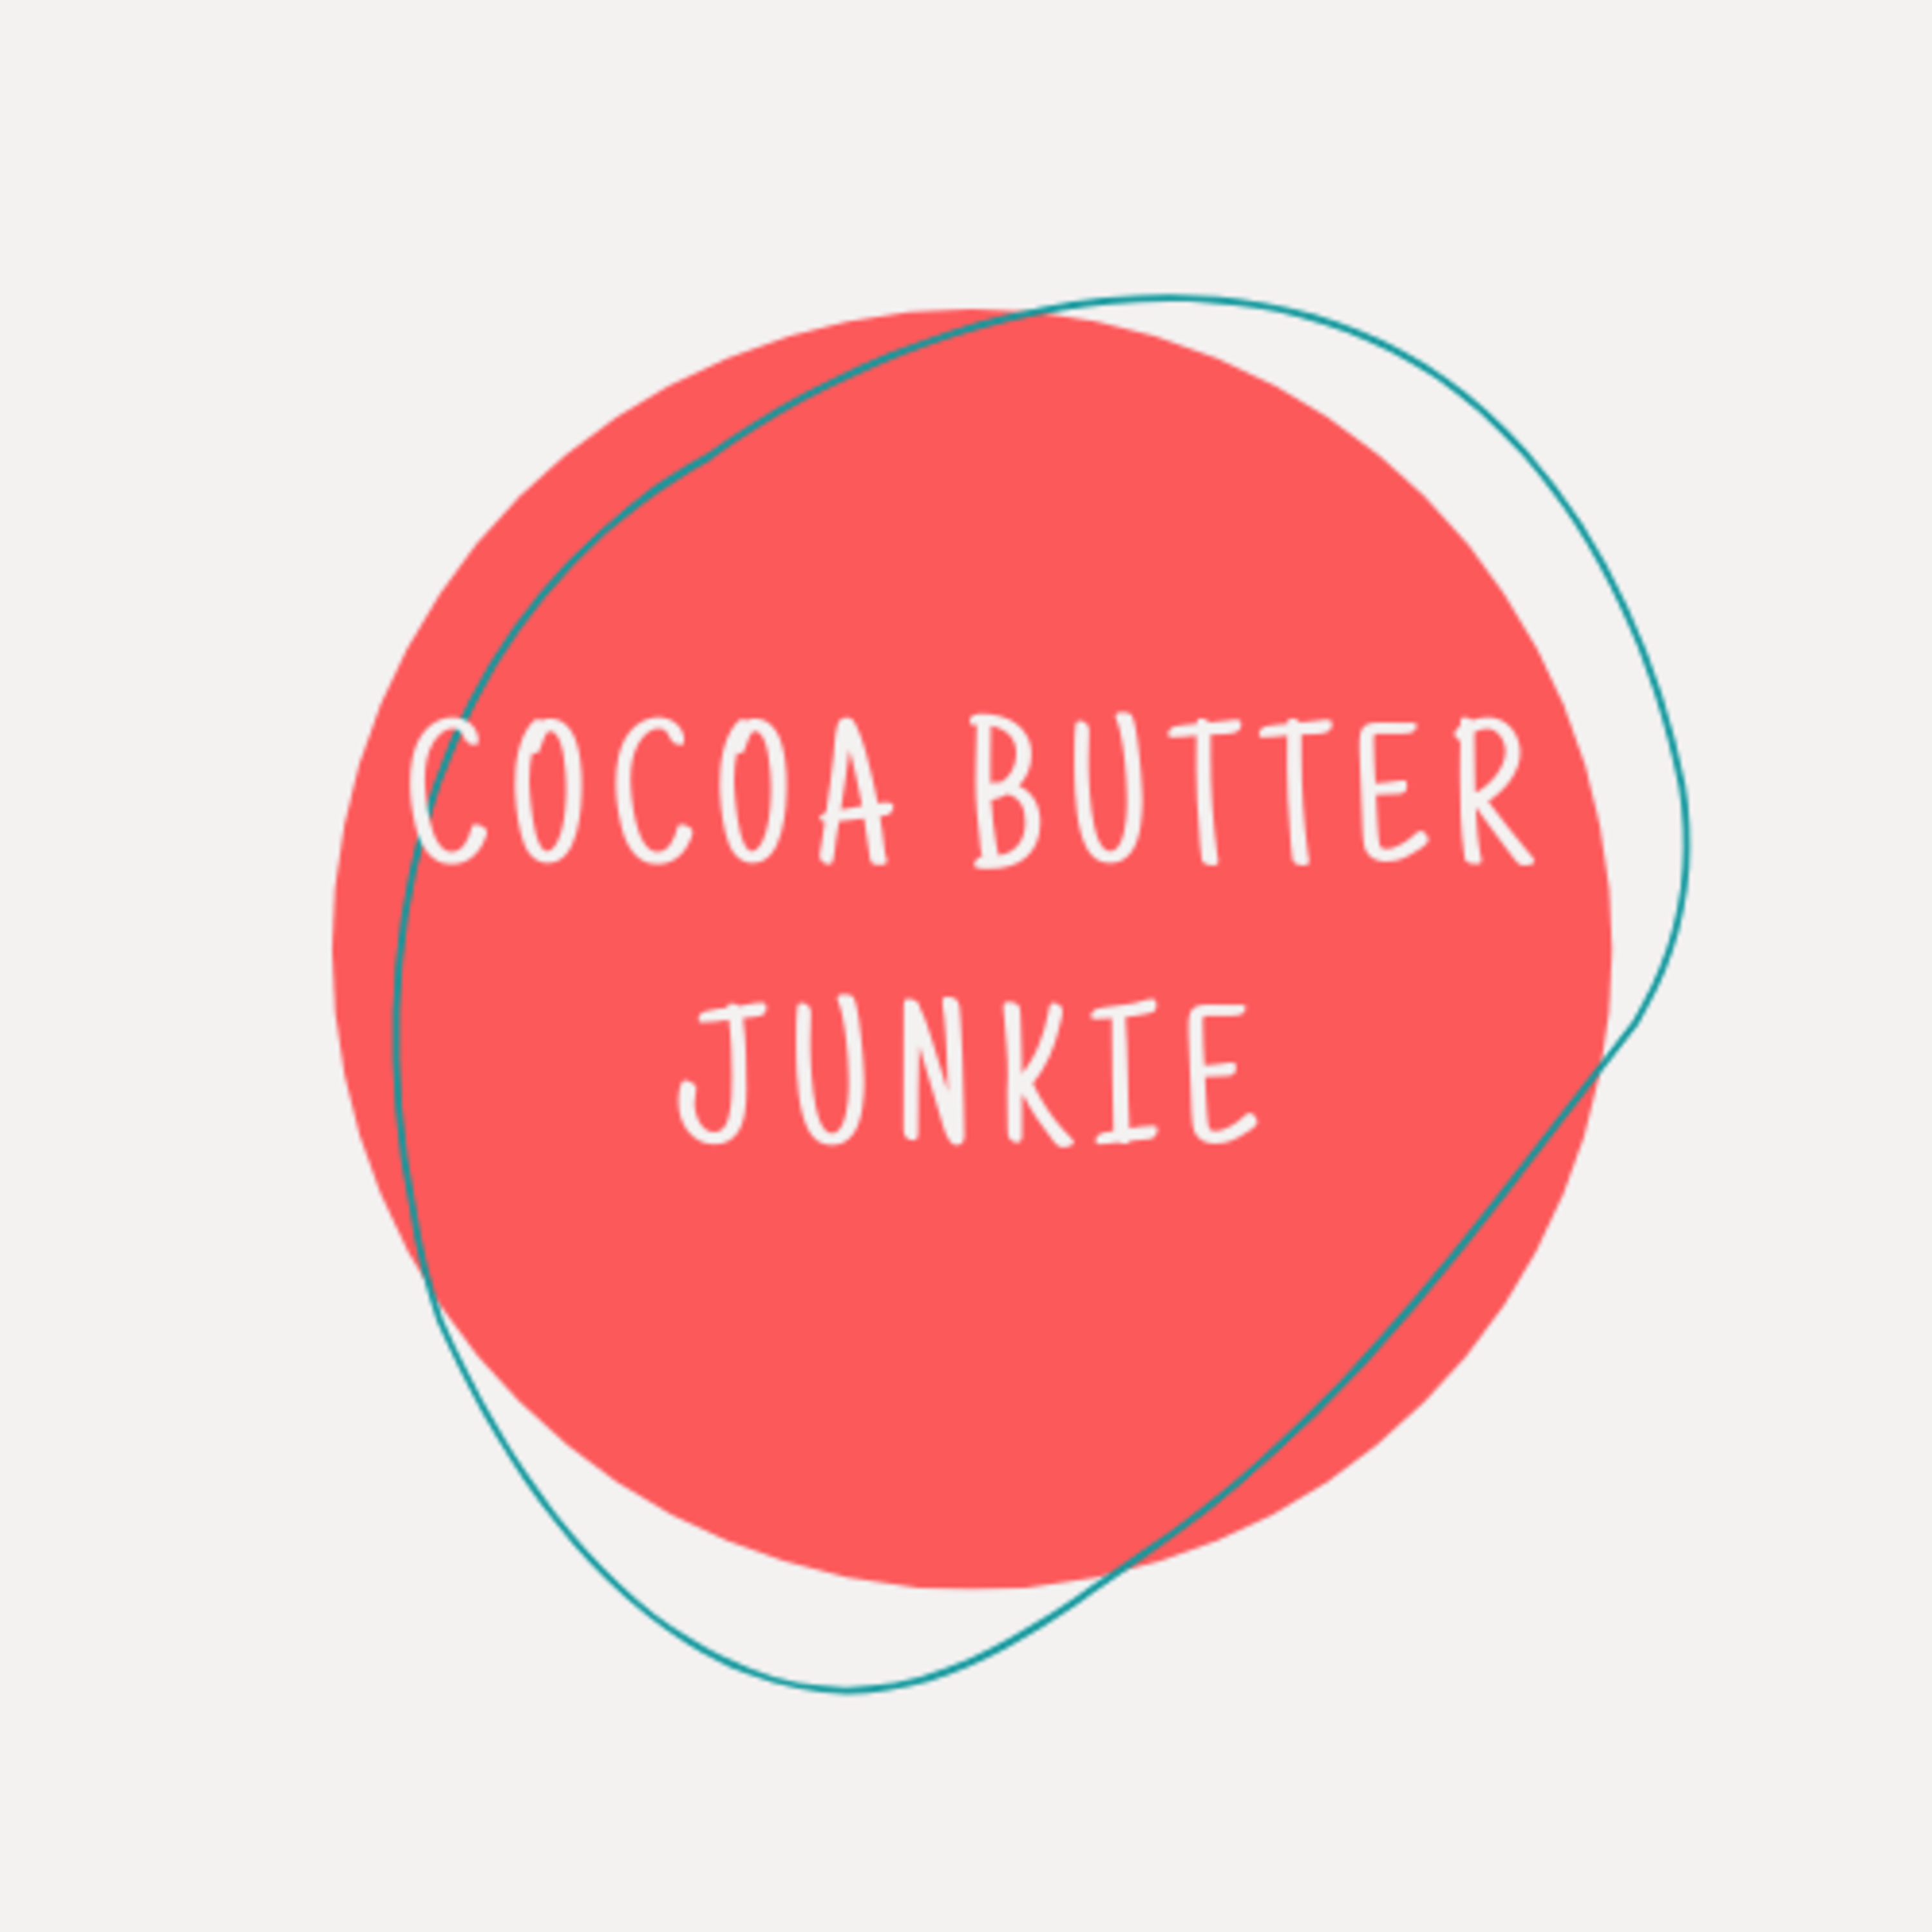 Cocoa Butter Junkie on Jamit